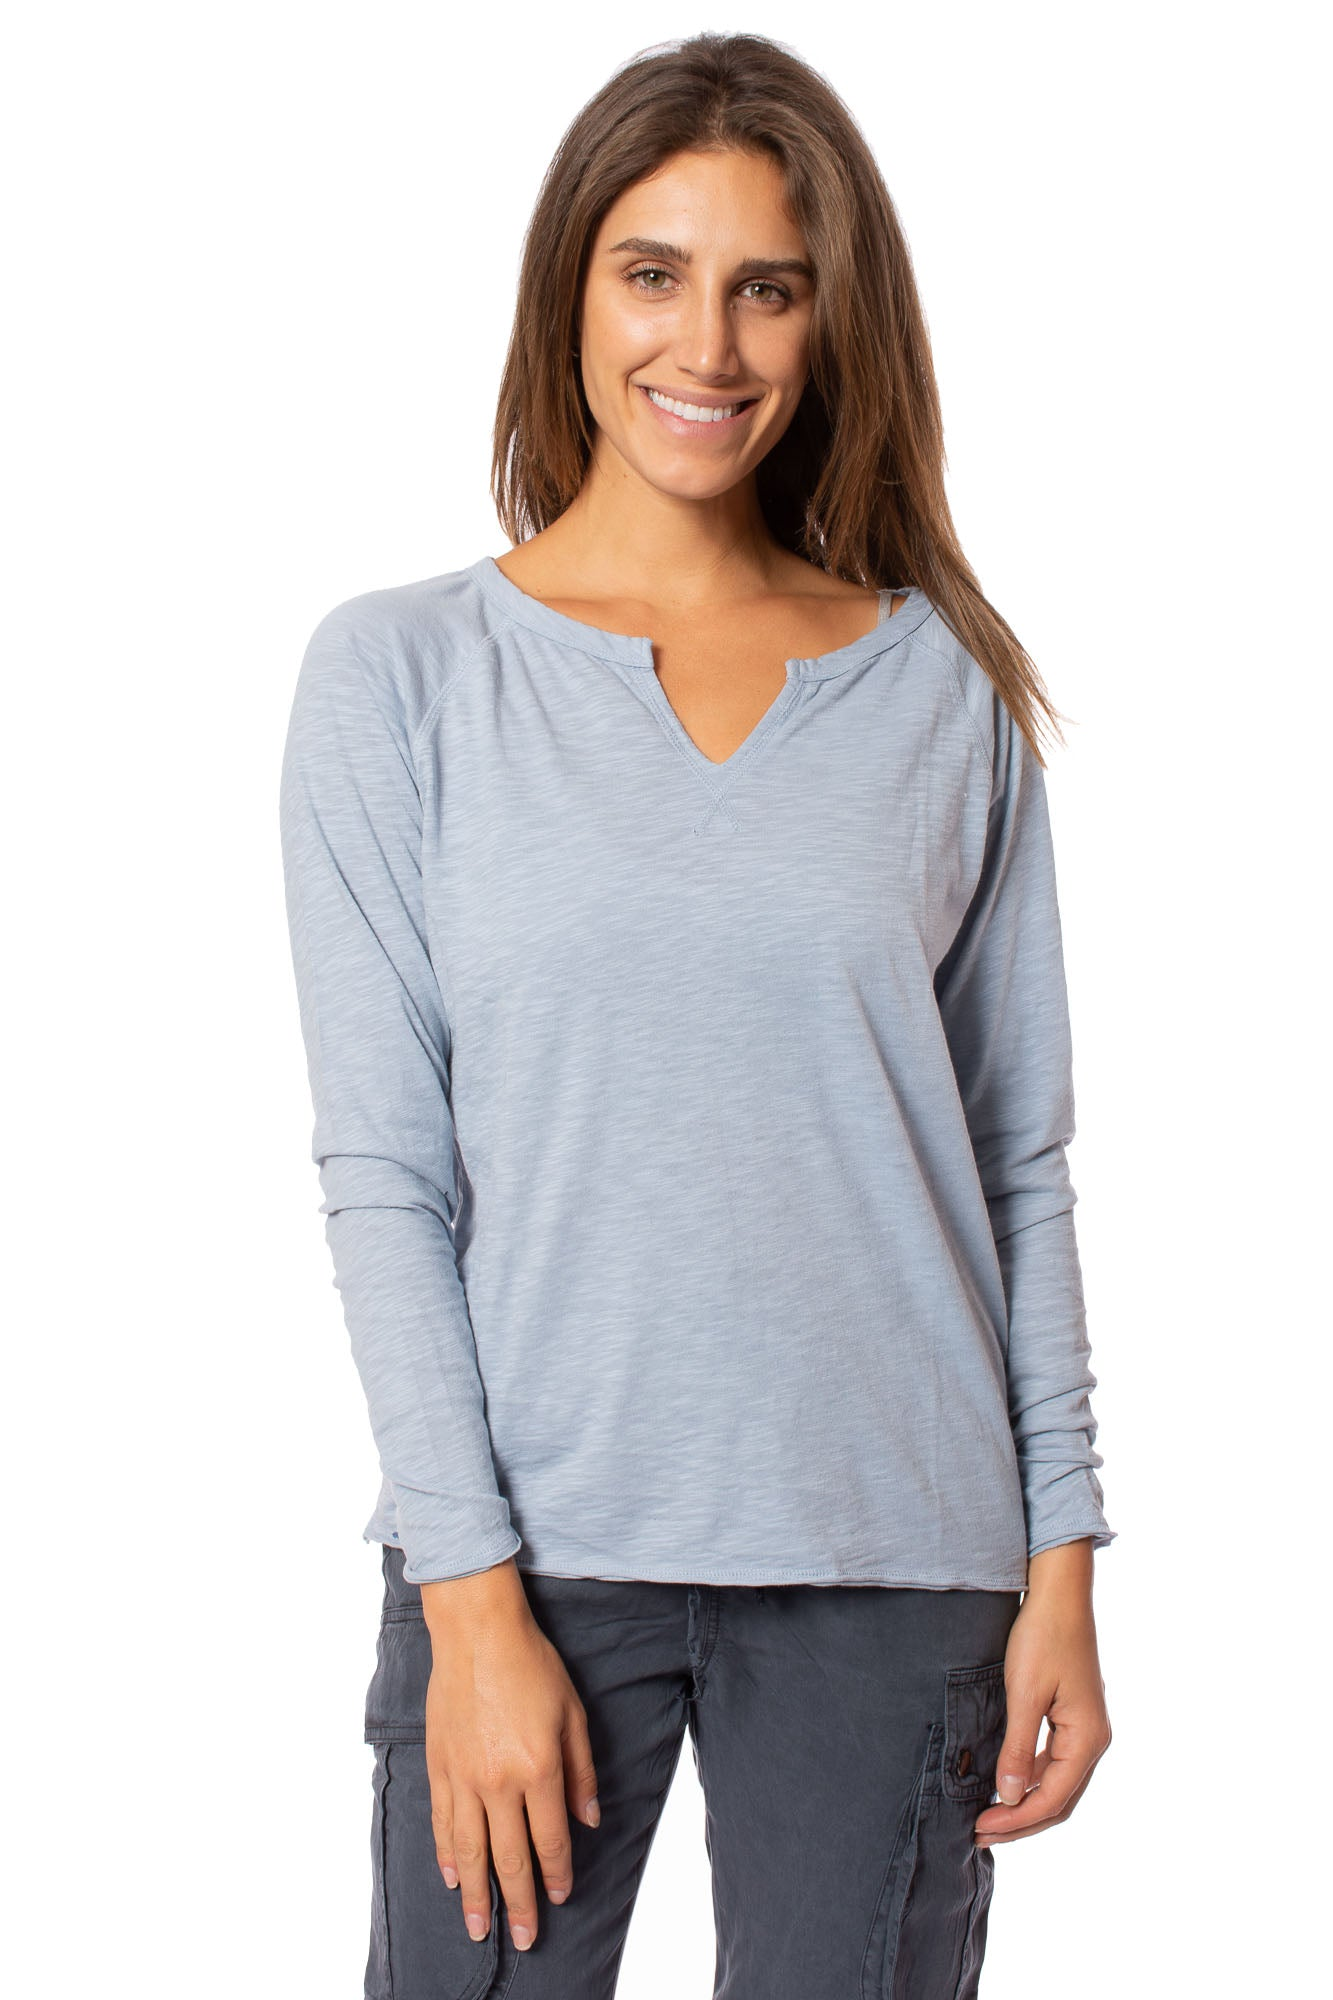 Bobi - Split Neck Raglan (54A-36119, Light Sky Blue)